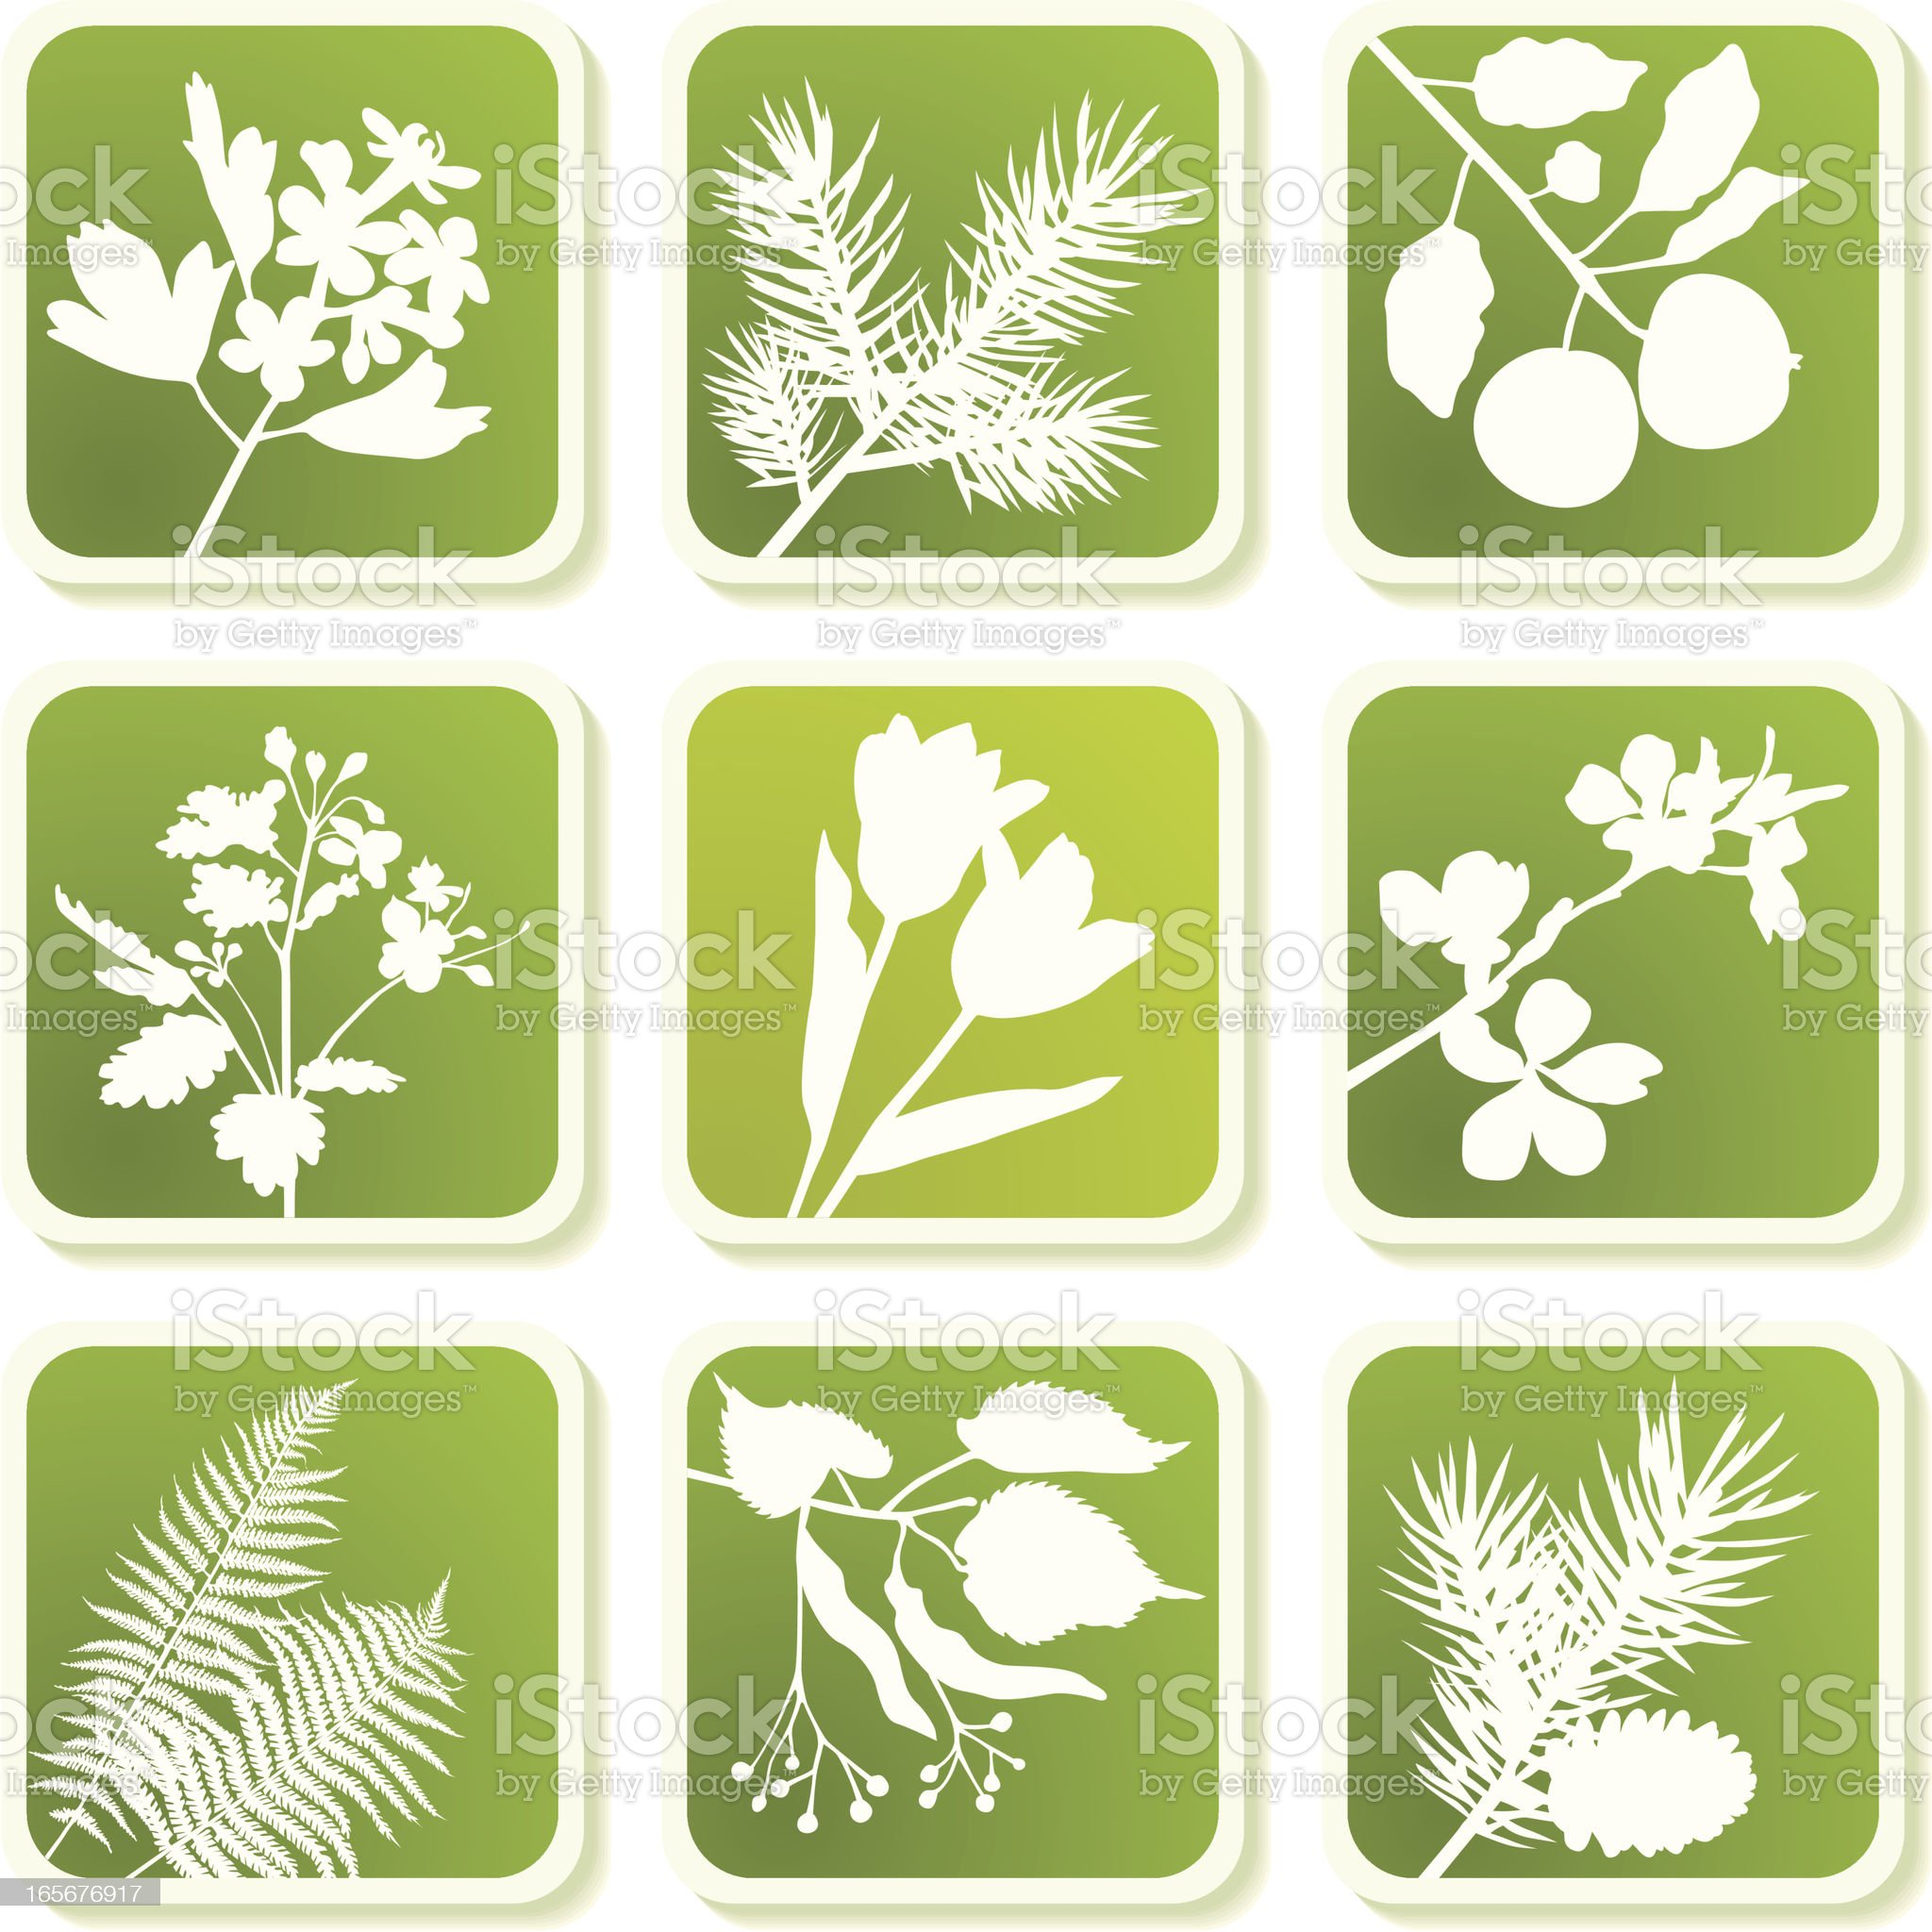 Herbal icons royalty-free stock vector art